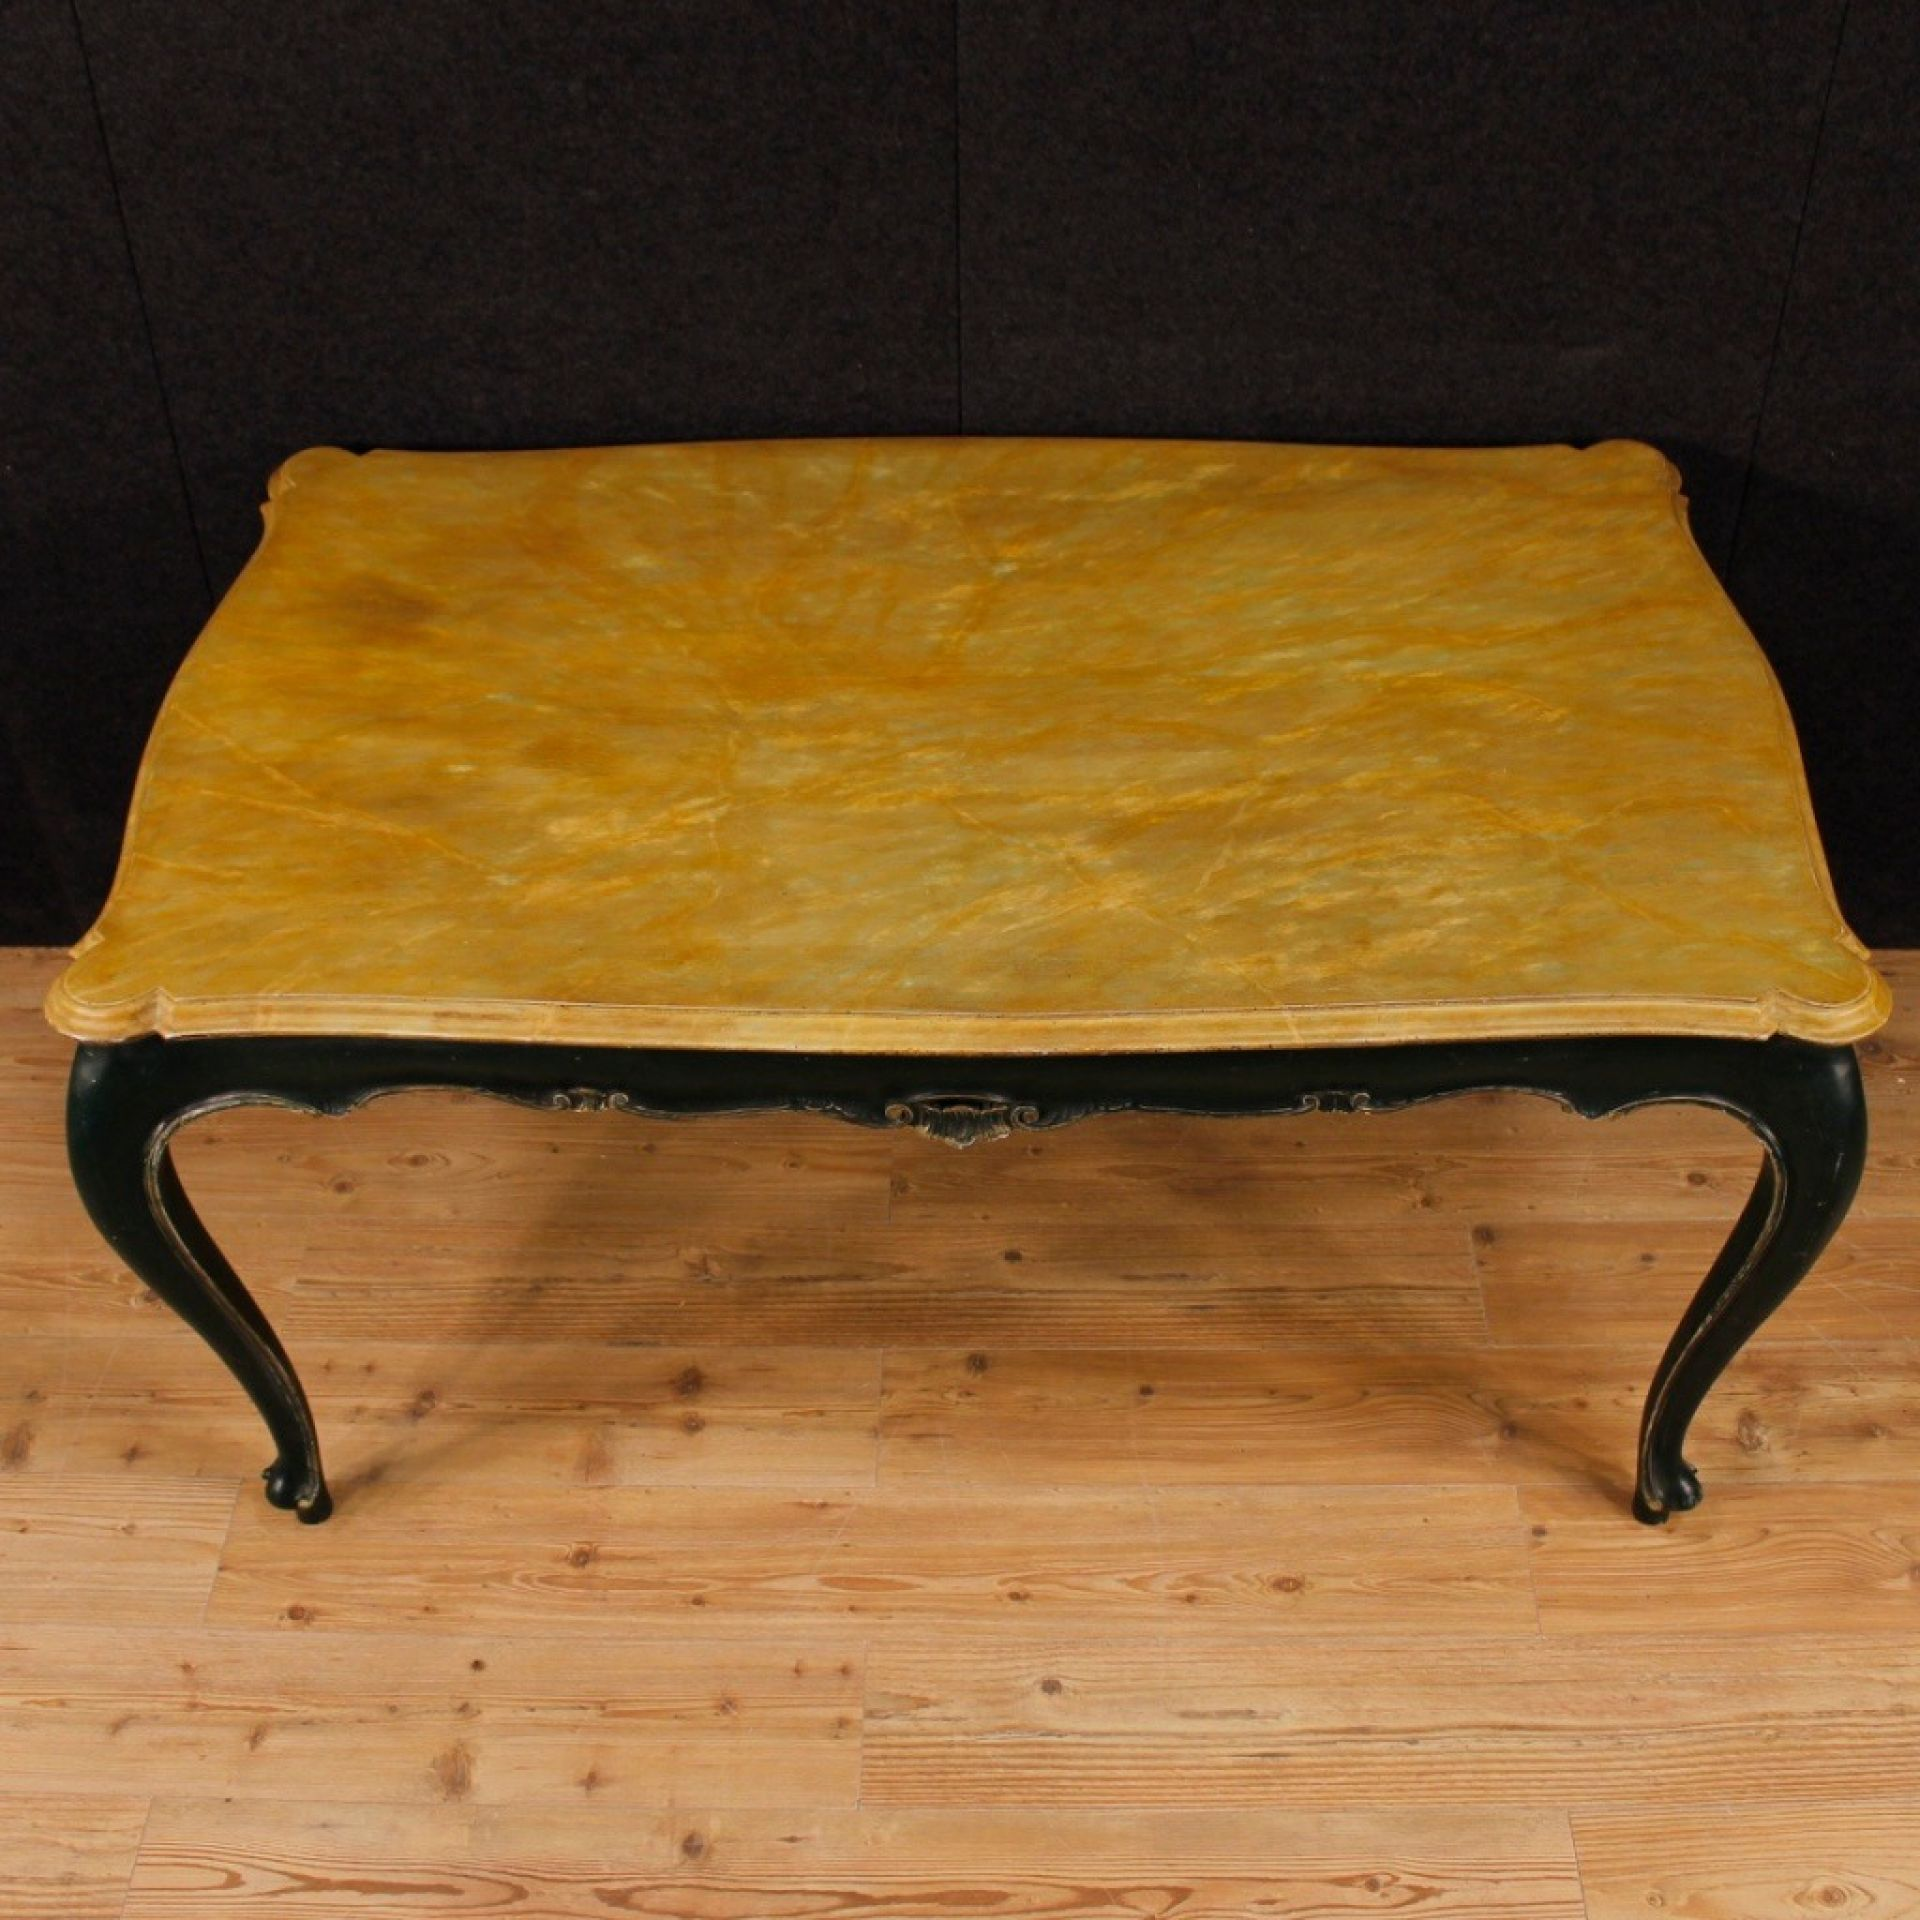 Venetian Dining Table In Lacquered Wood From 20th Century